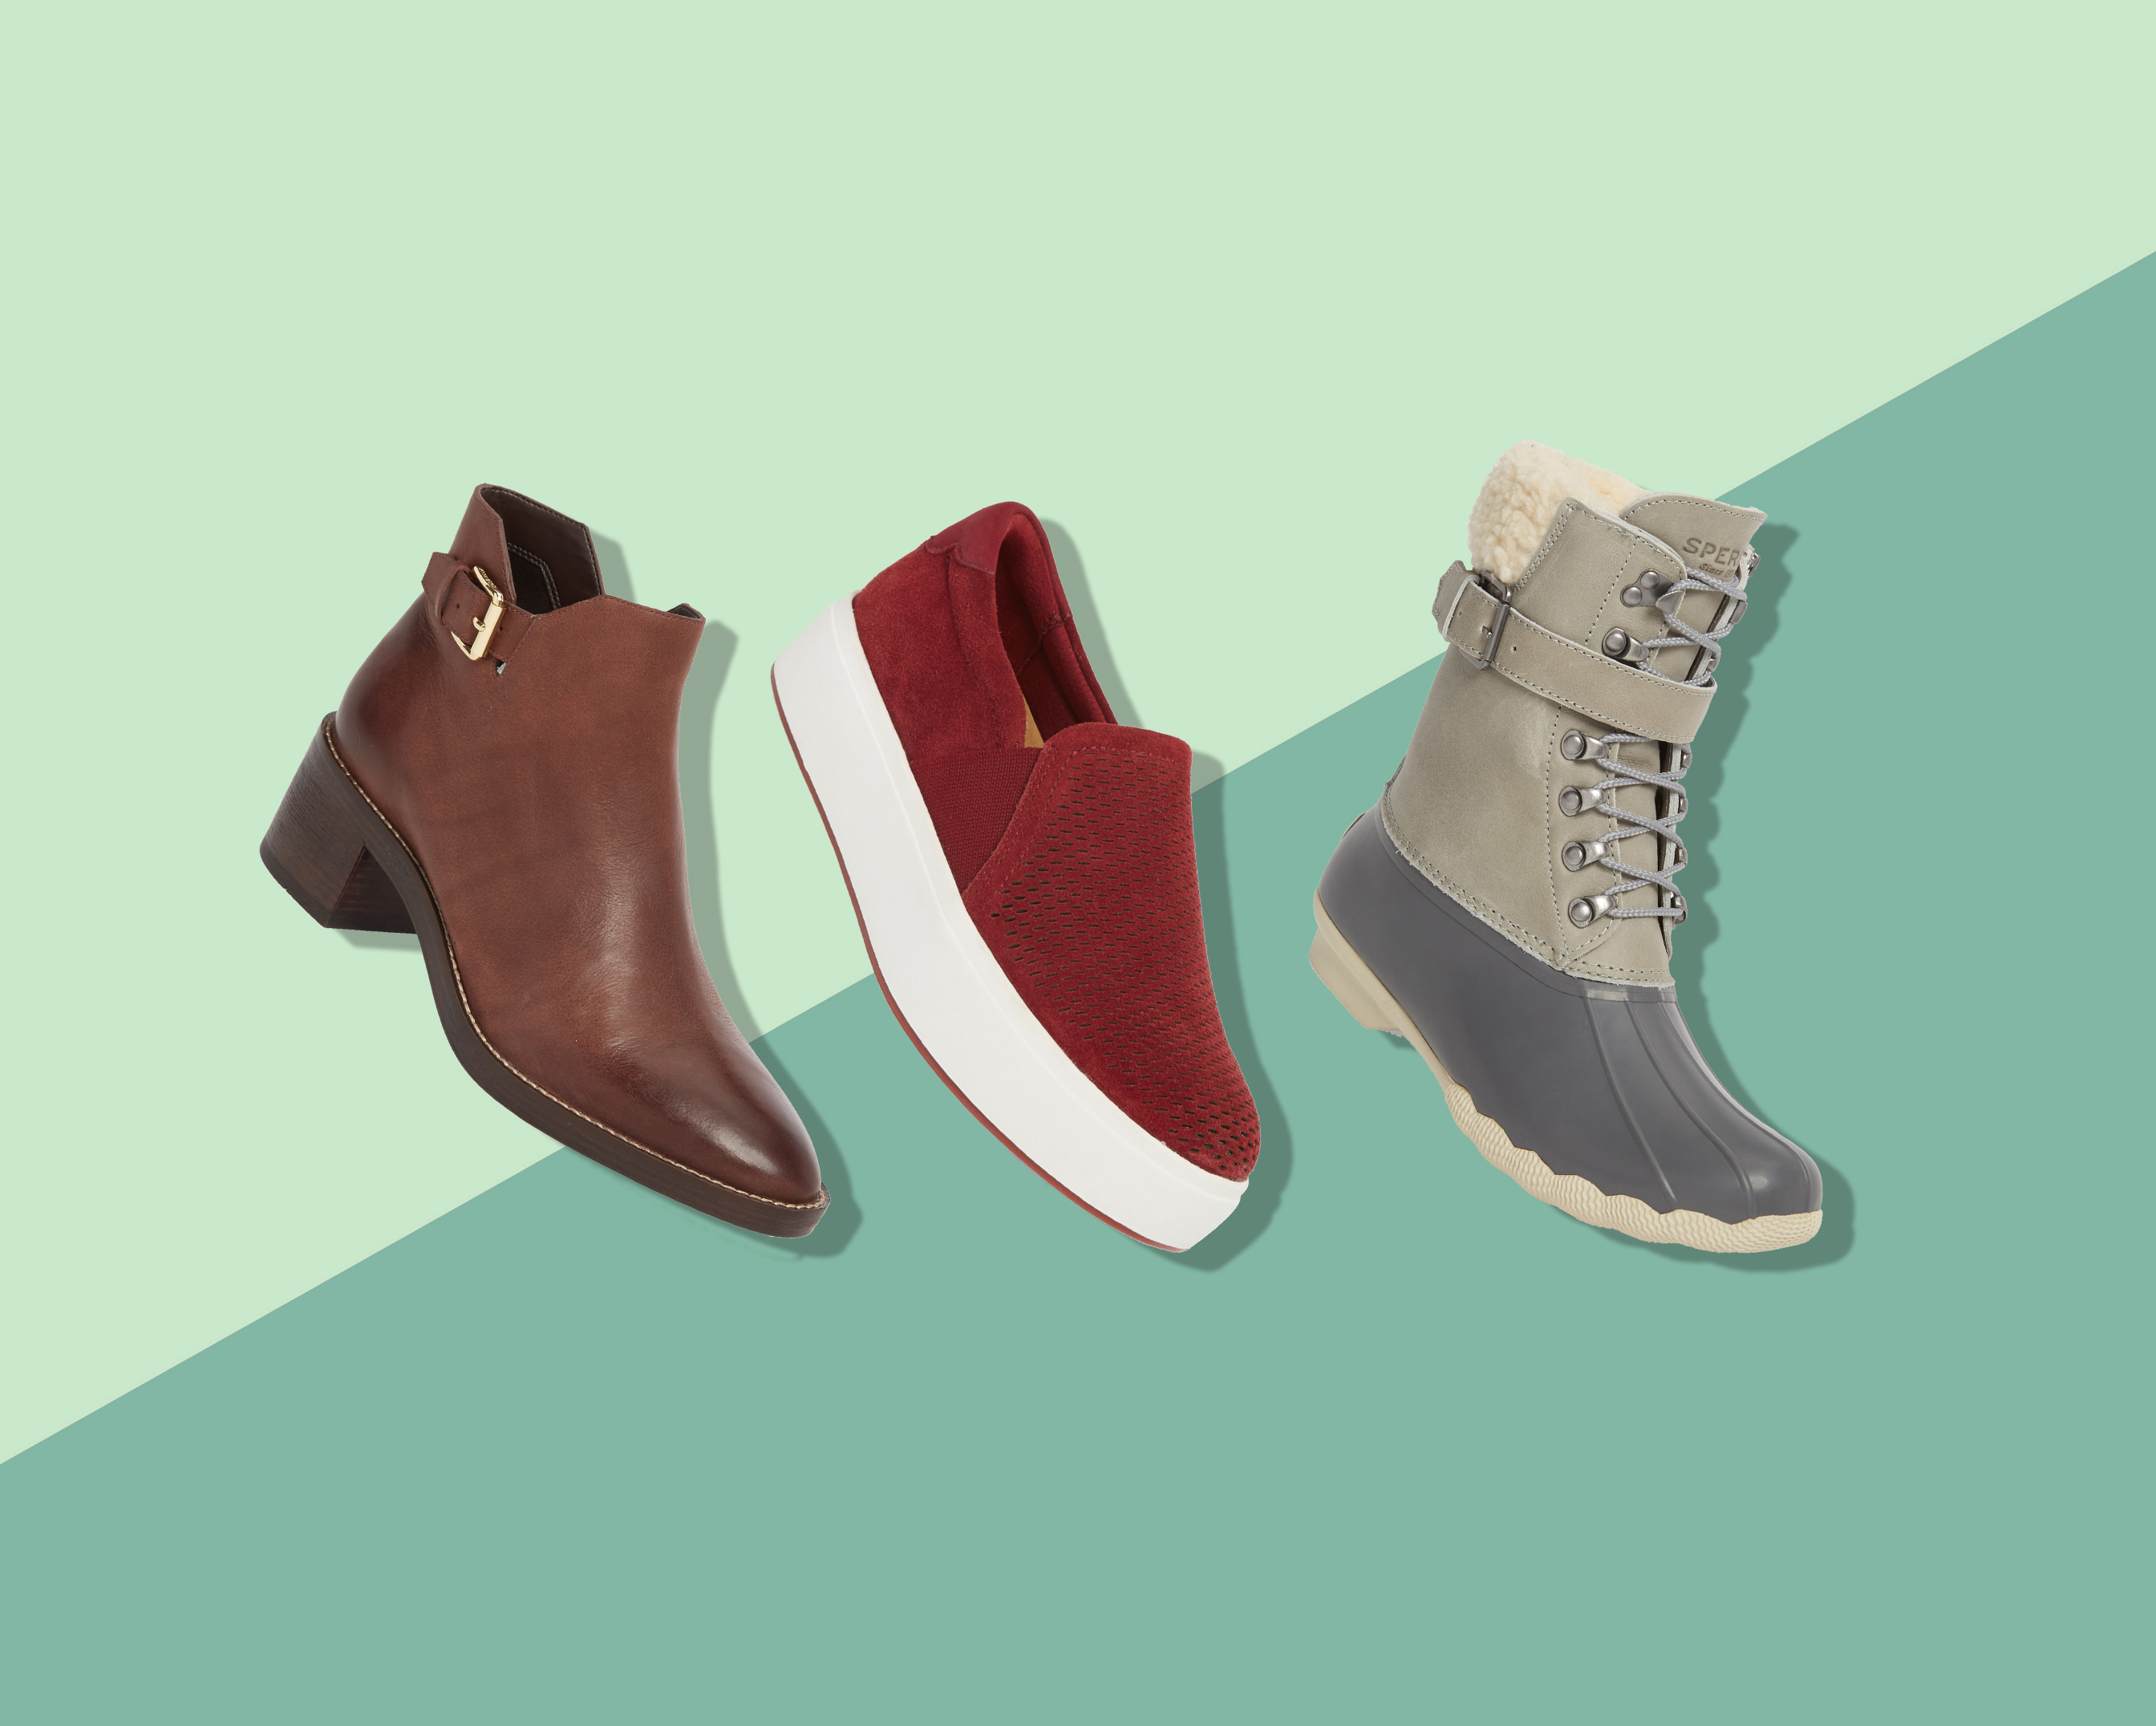 6 Ridiculously Comfortable Shoes in the Nordstrom Anniversary Sale